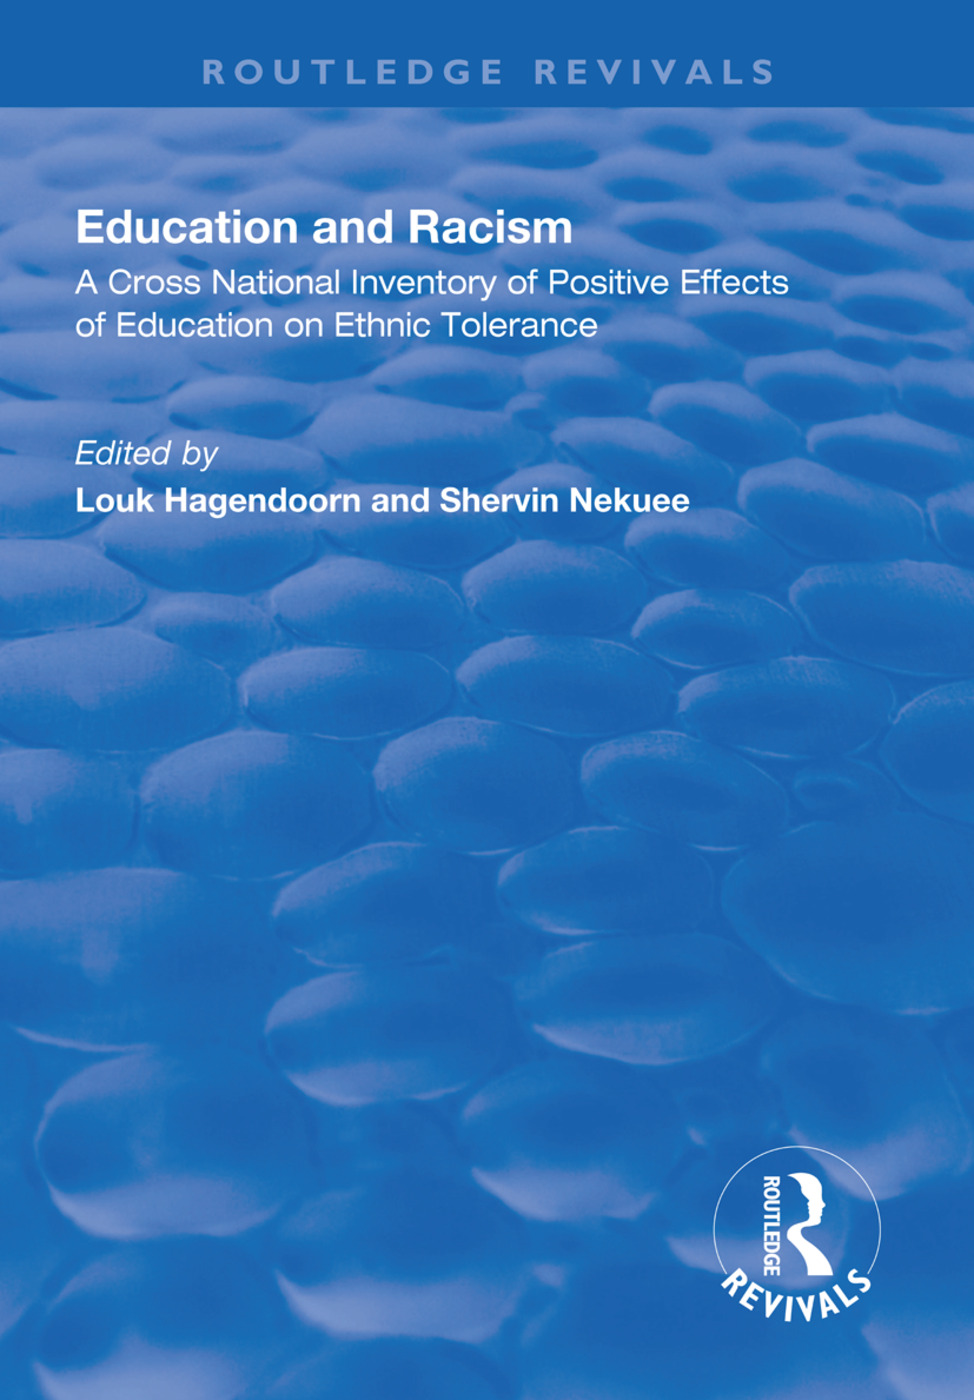 Education and Racism: A Cross National Inventory of Positive Effects of Education on Ethnic Tolerance book cover